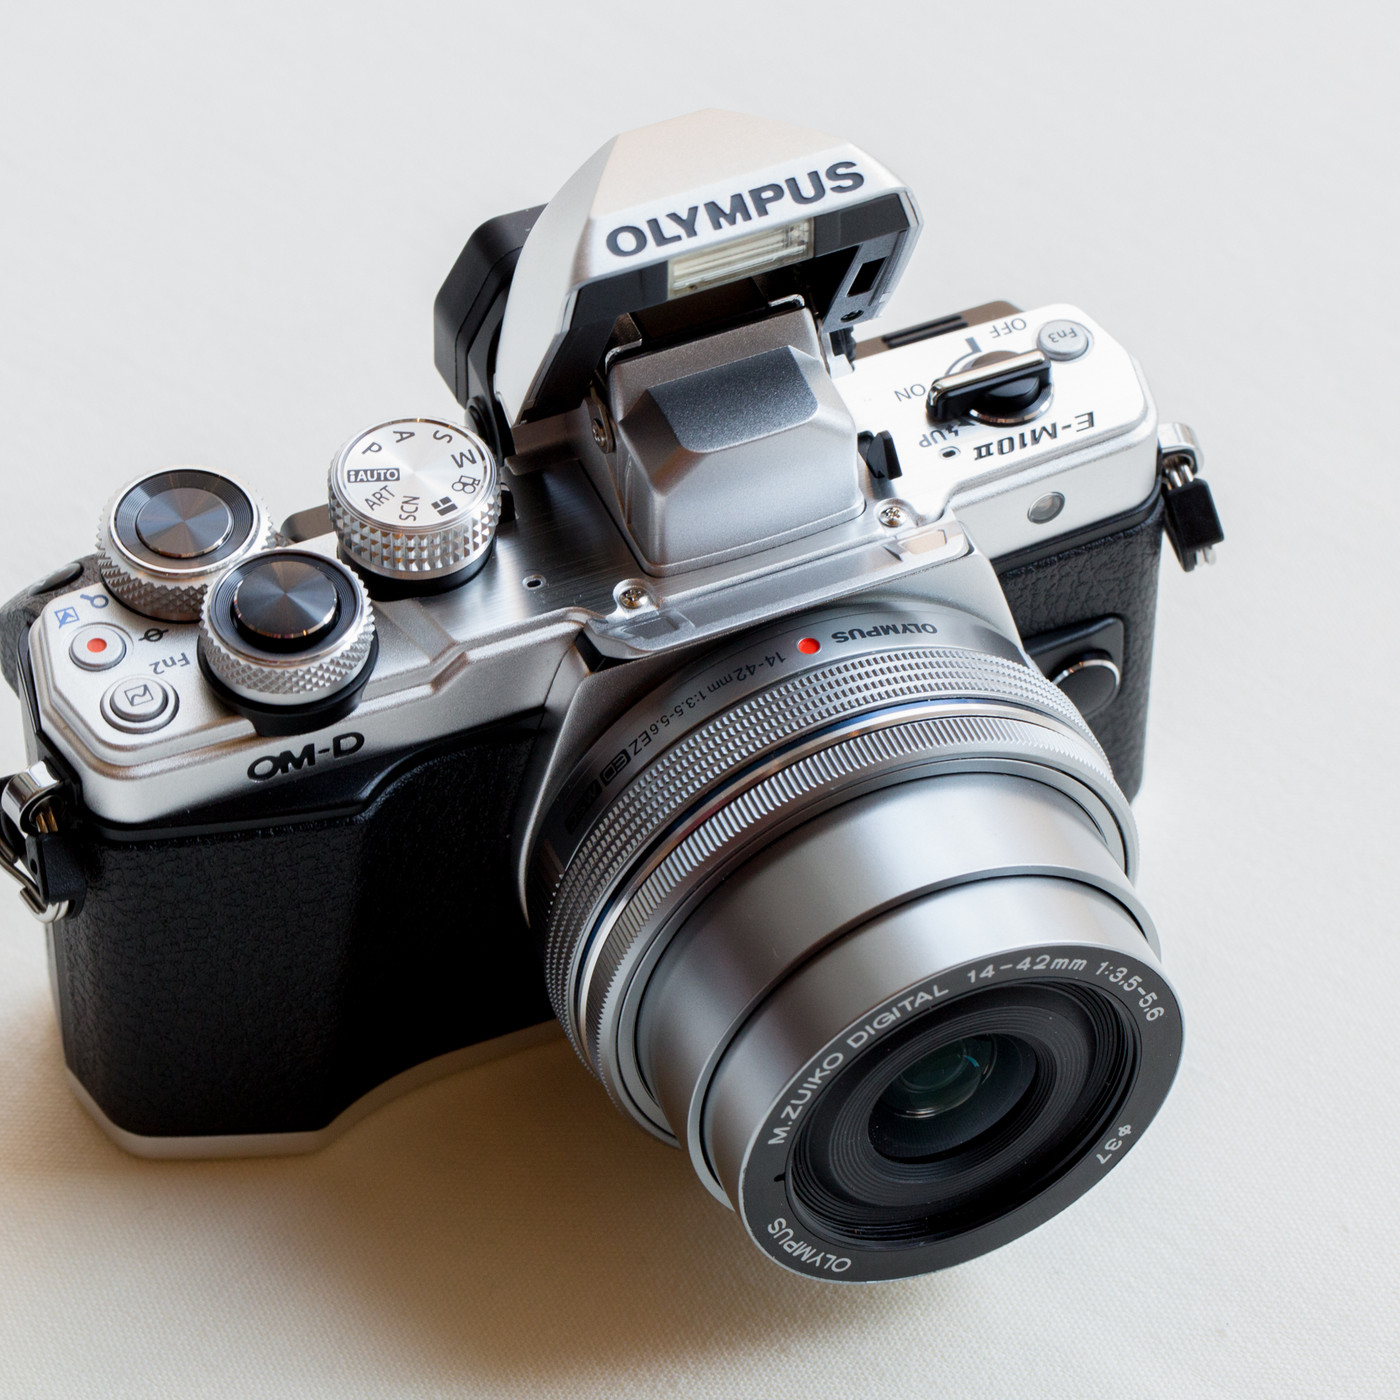 The new Olympus E M10 Mark II is a tiny metal powerhouse of a camera